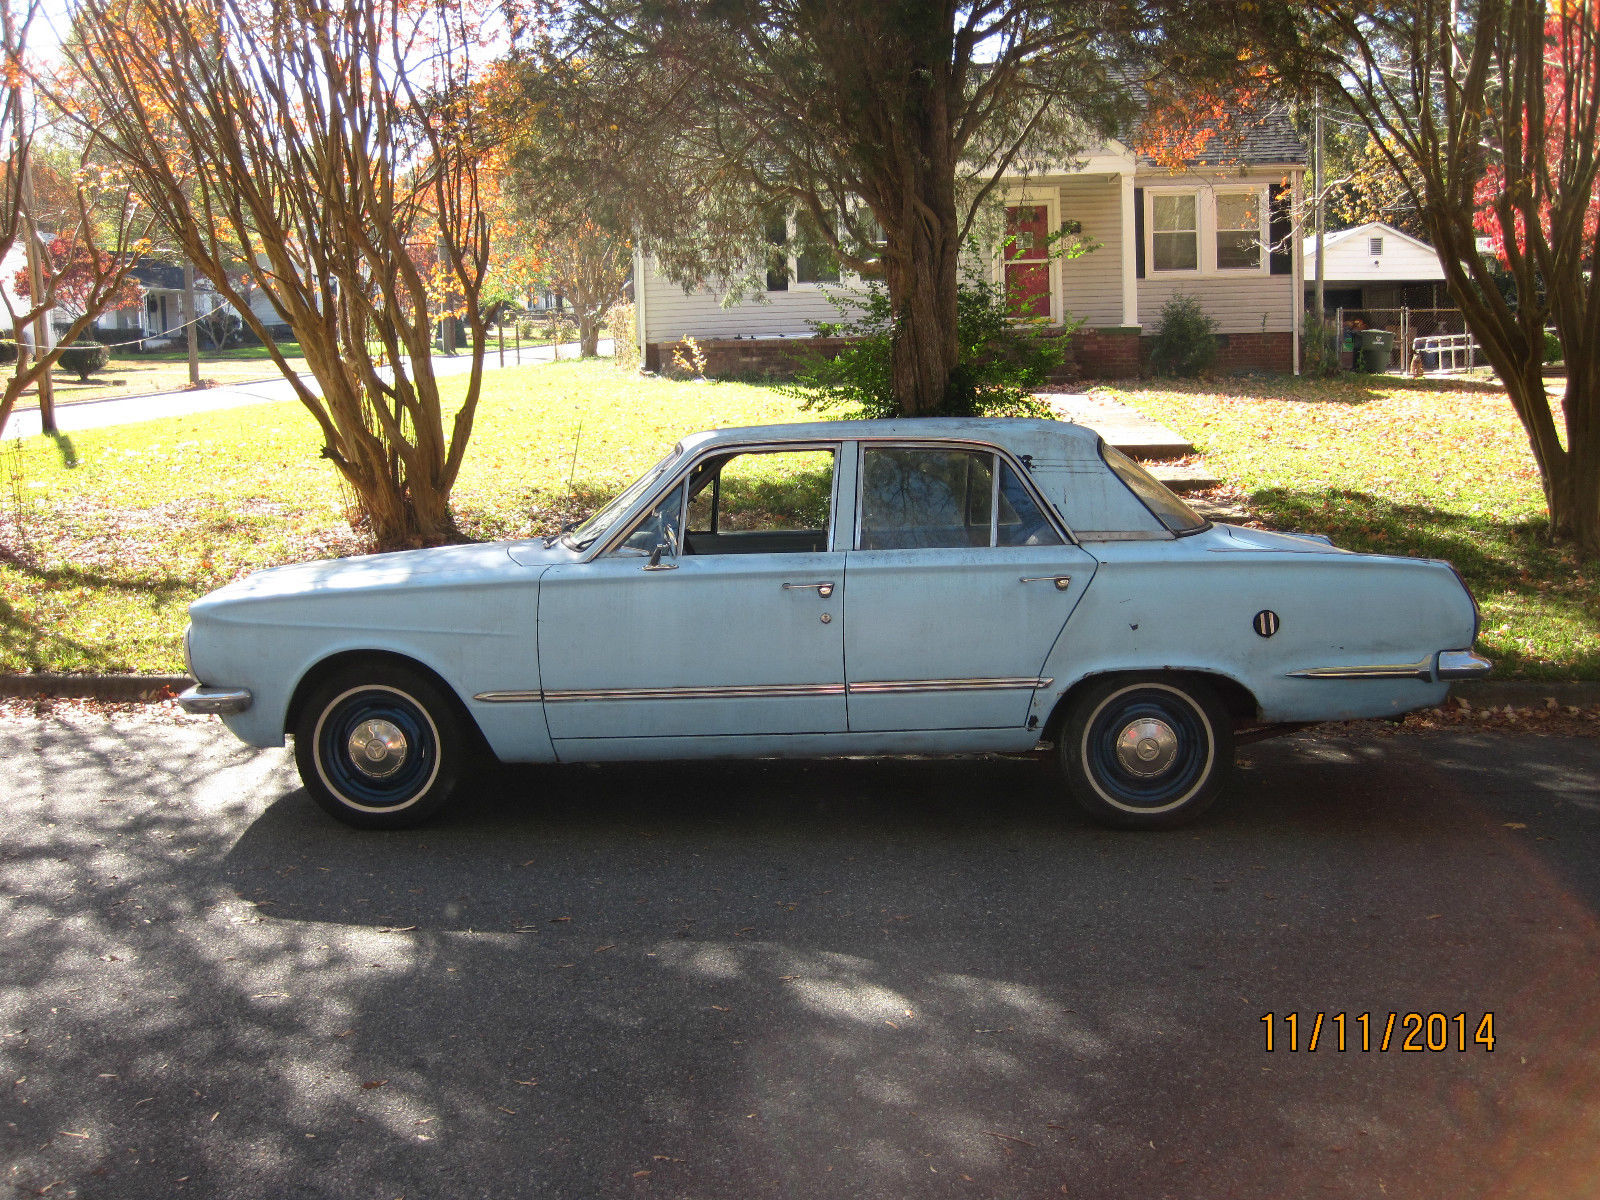 1964 Plymouth Valiant Automatic With Push Button Transmission Dodge Police Car Other